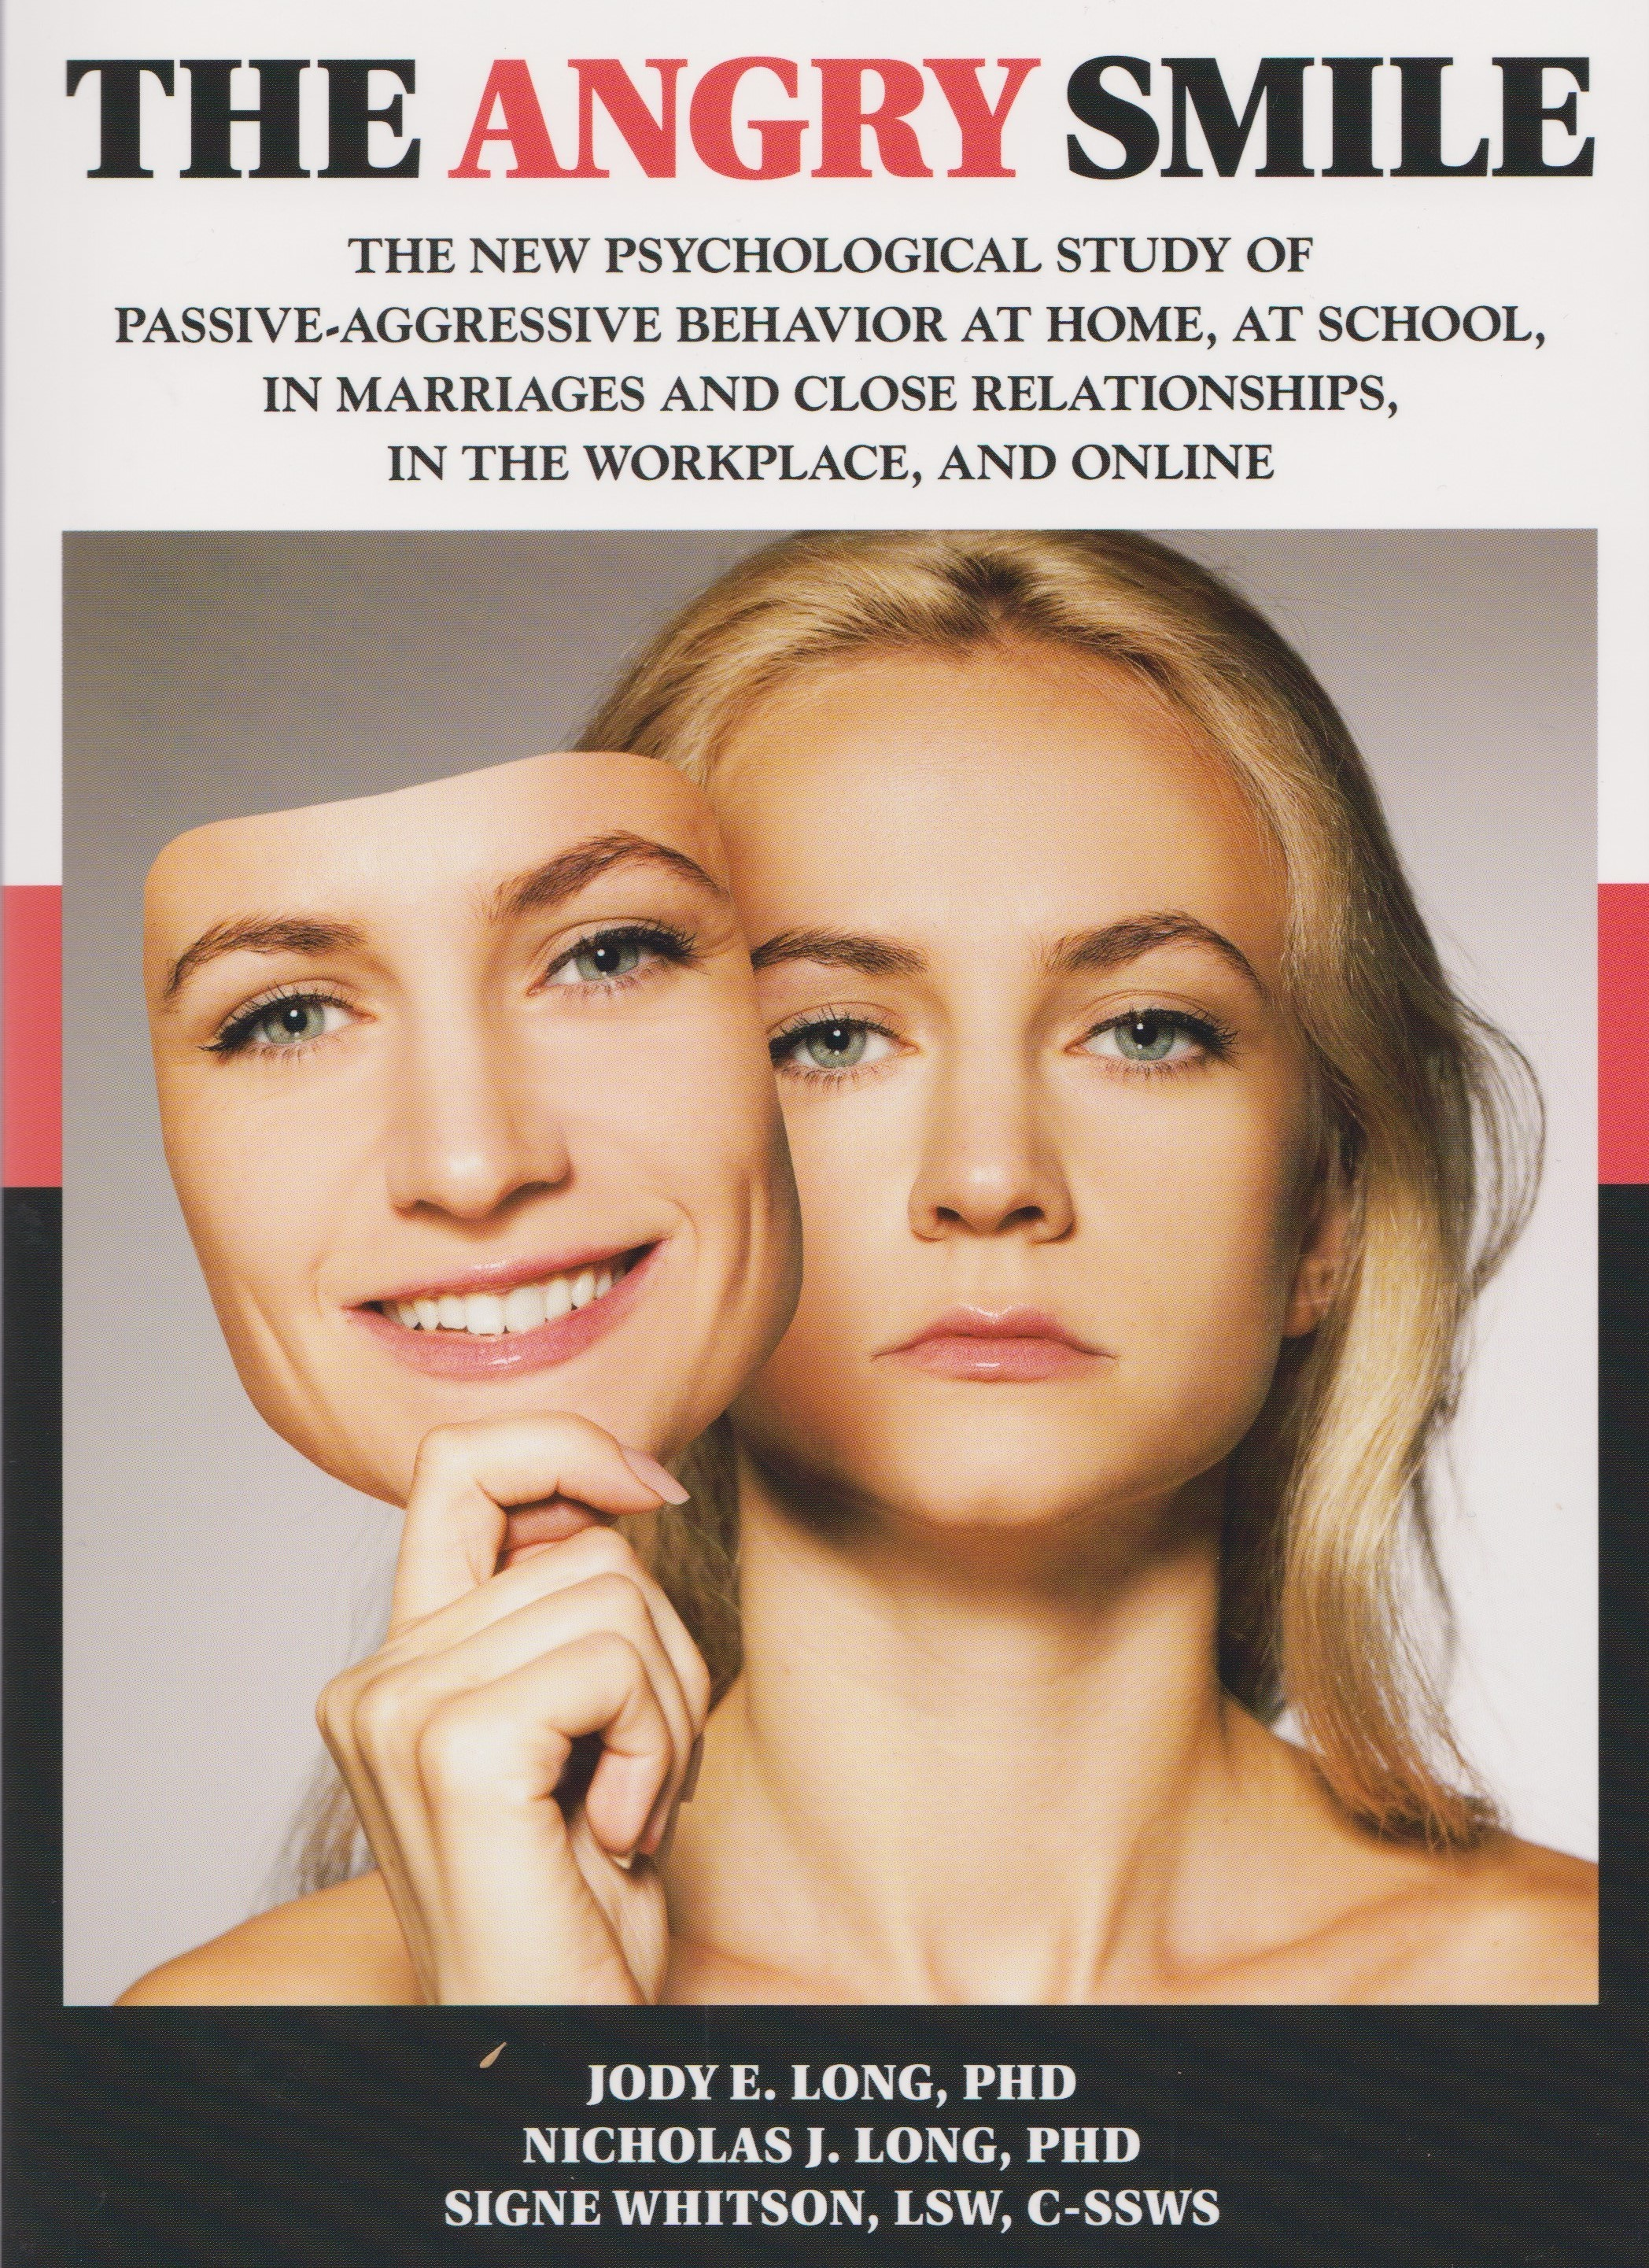 The Angry Smile: The New Psychological Study of Passive-Aggressive Behavior at Home, at School, in Marriages and Close Relationships, in the Workplace, and Online